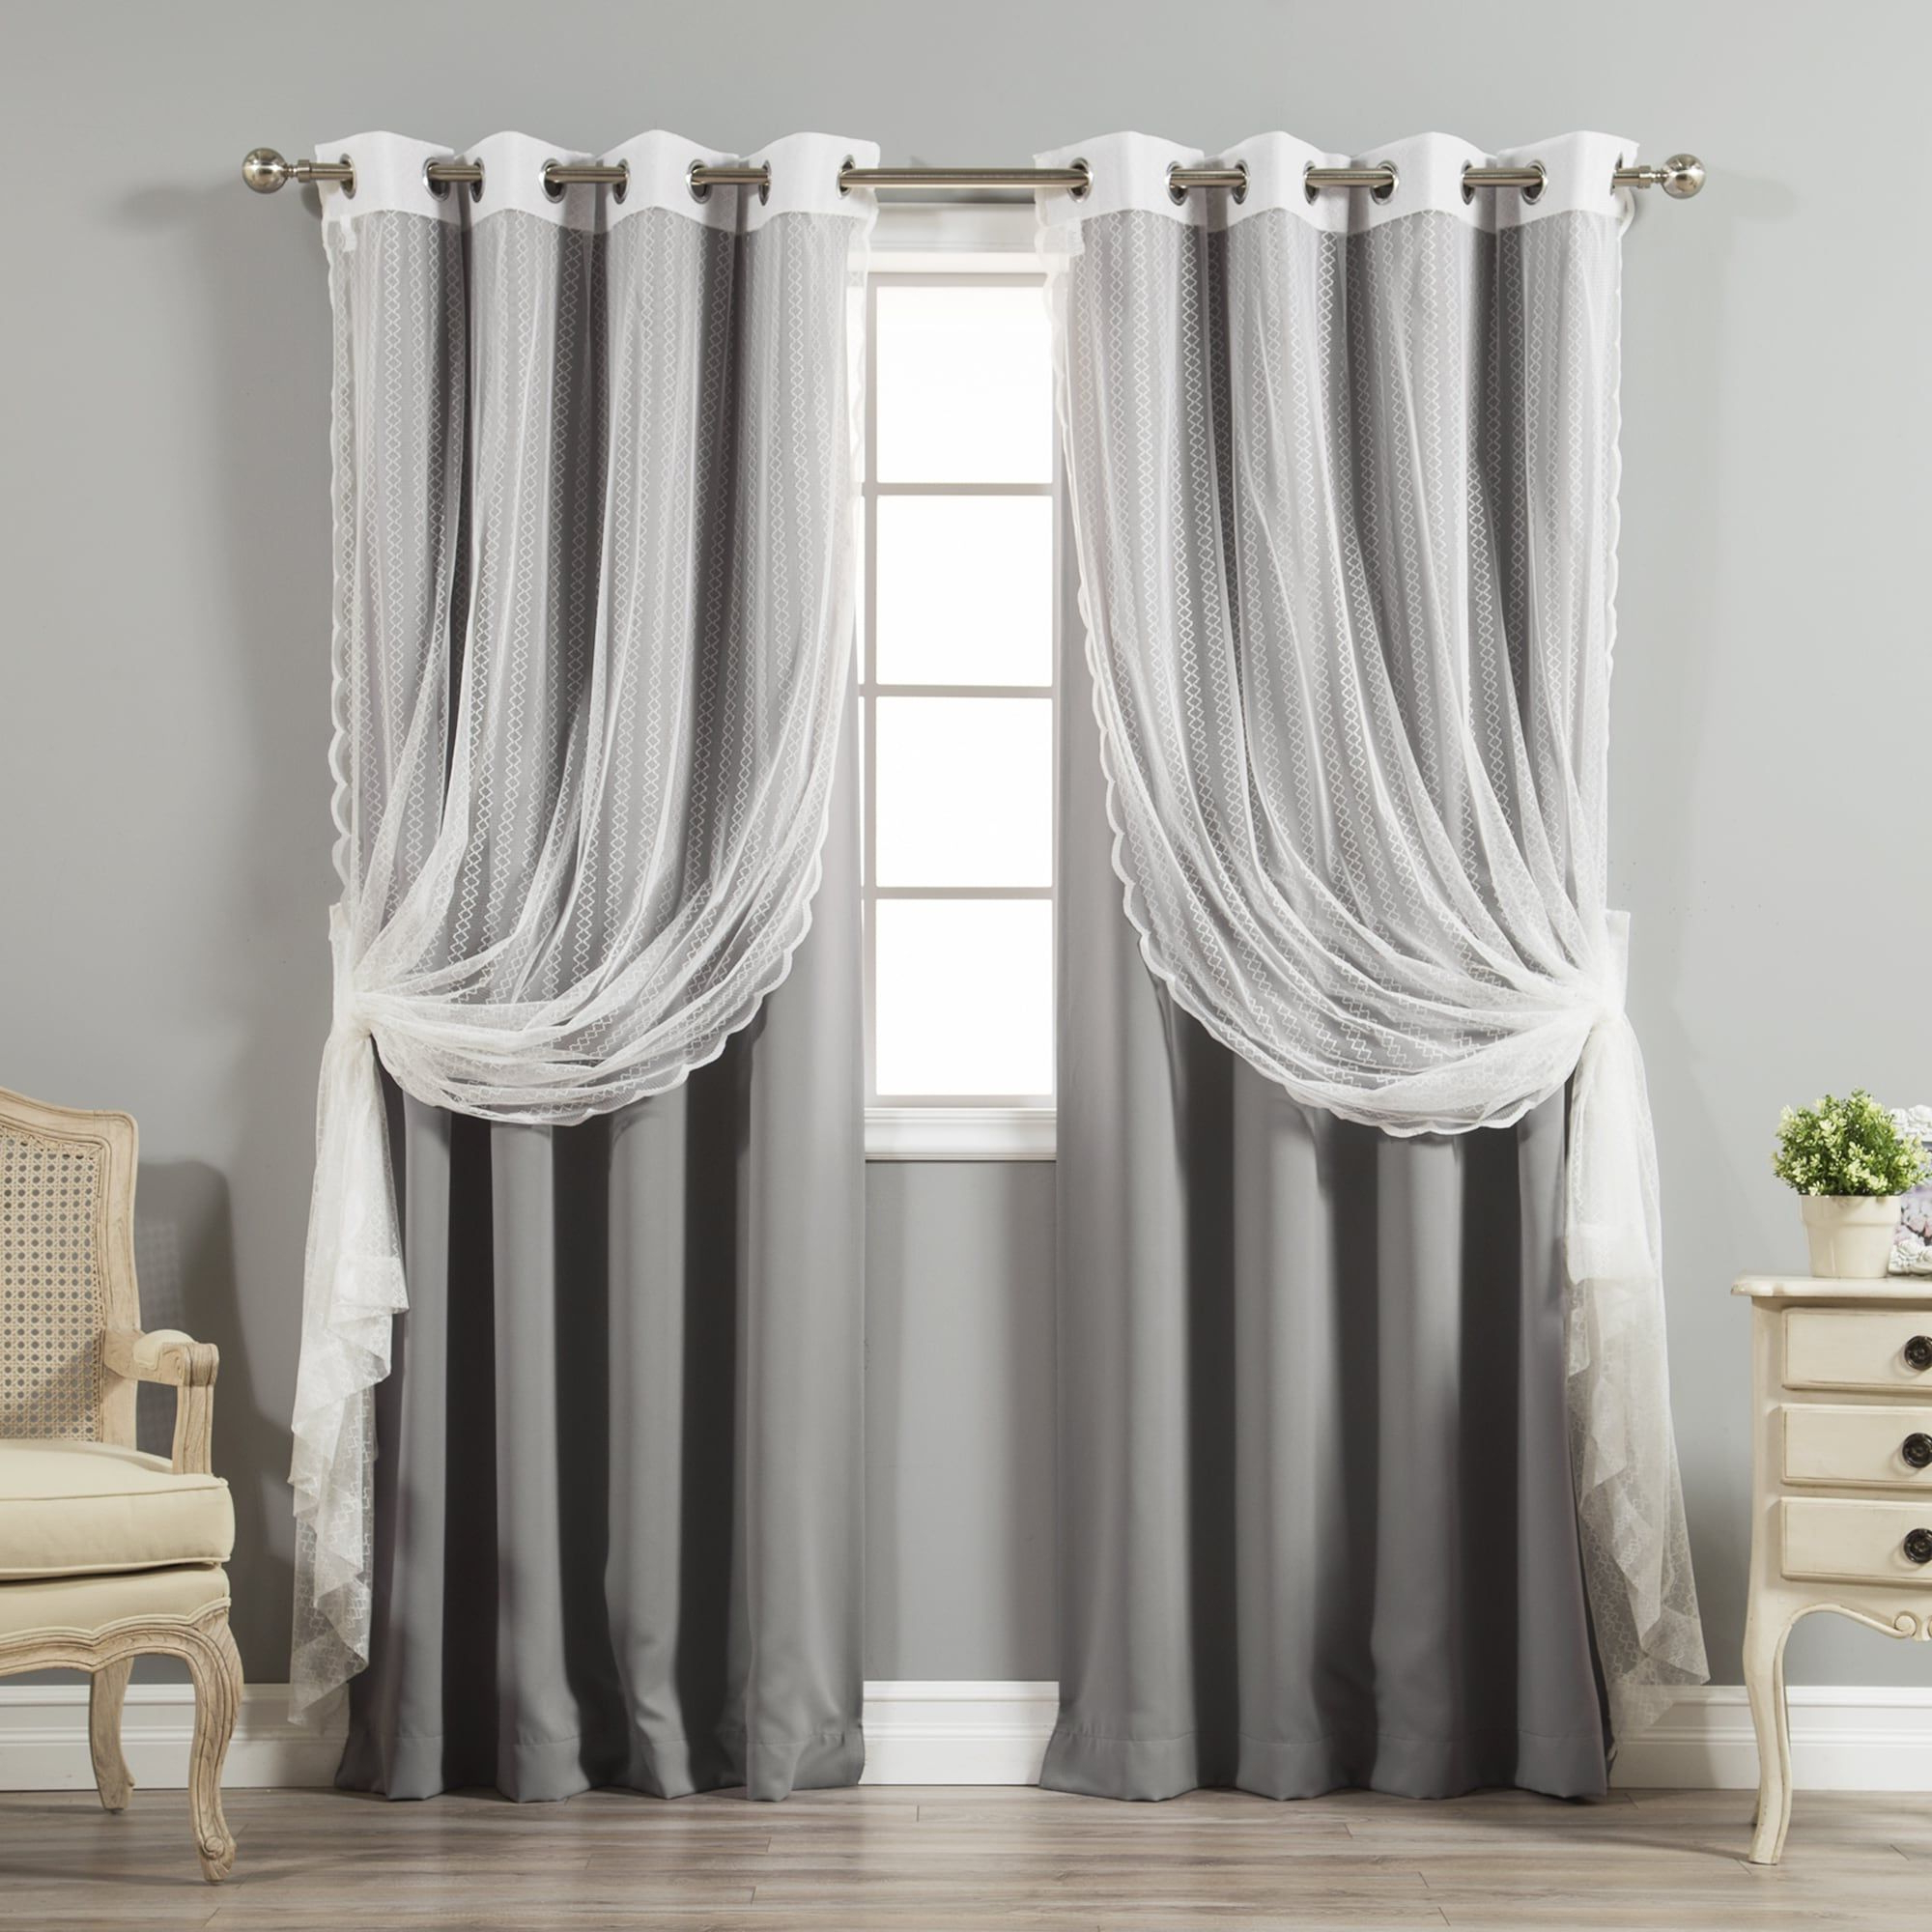 Mix And Match Blackout Blackout Curtains Panel Sets Pertaining To Current Aurora Home Mix And Match Blackout And Zigzag Lace Curtain (Gallery 12 of 20)